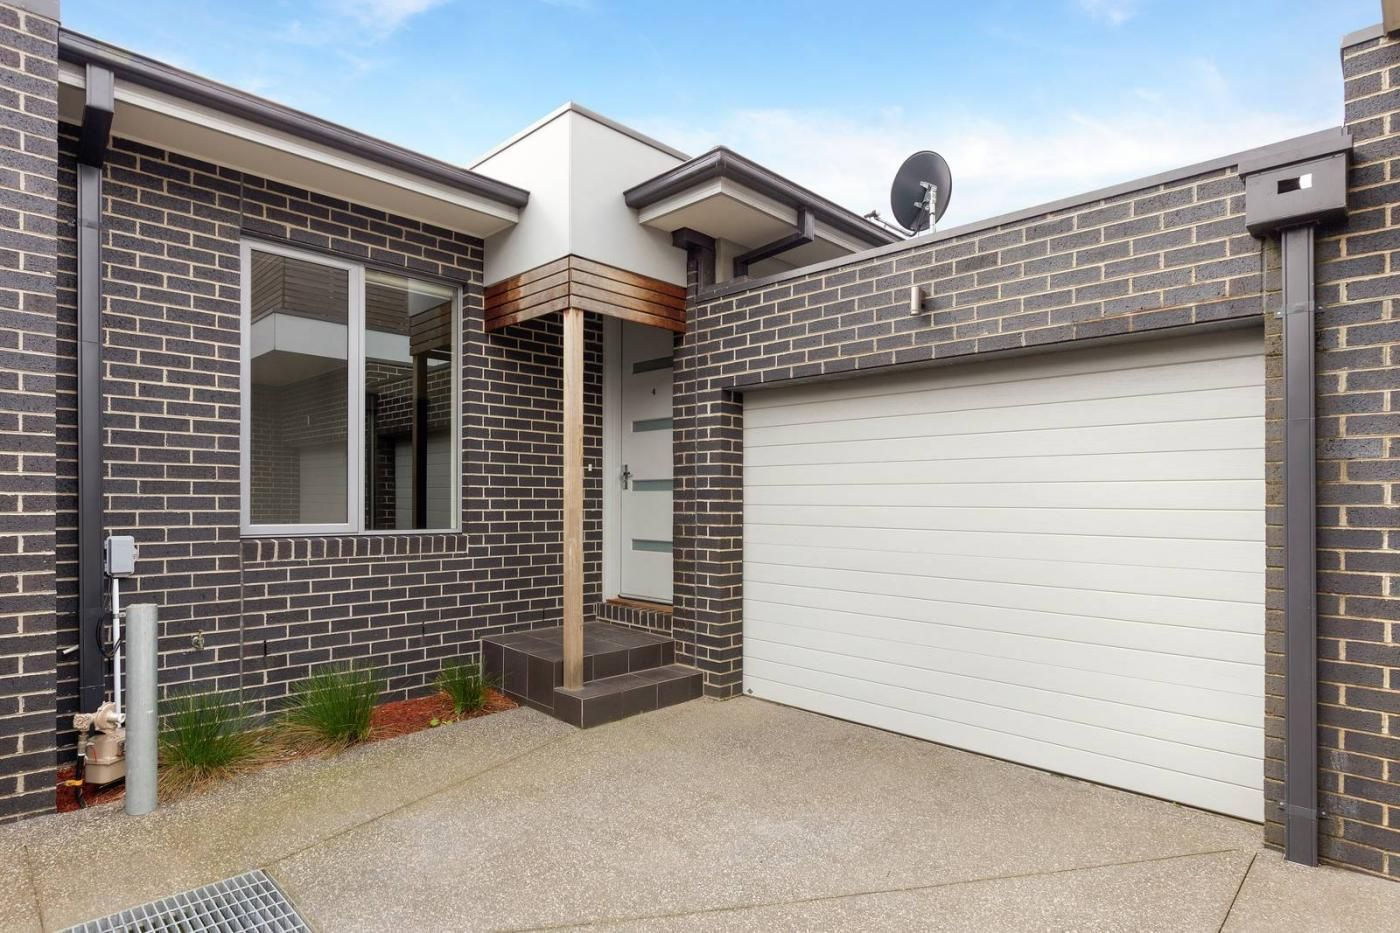 4/38 Lothair Street, Pascoe Vale South VIC 3044, Image 0